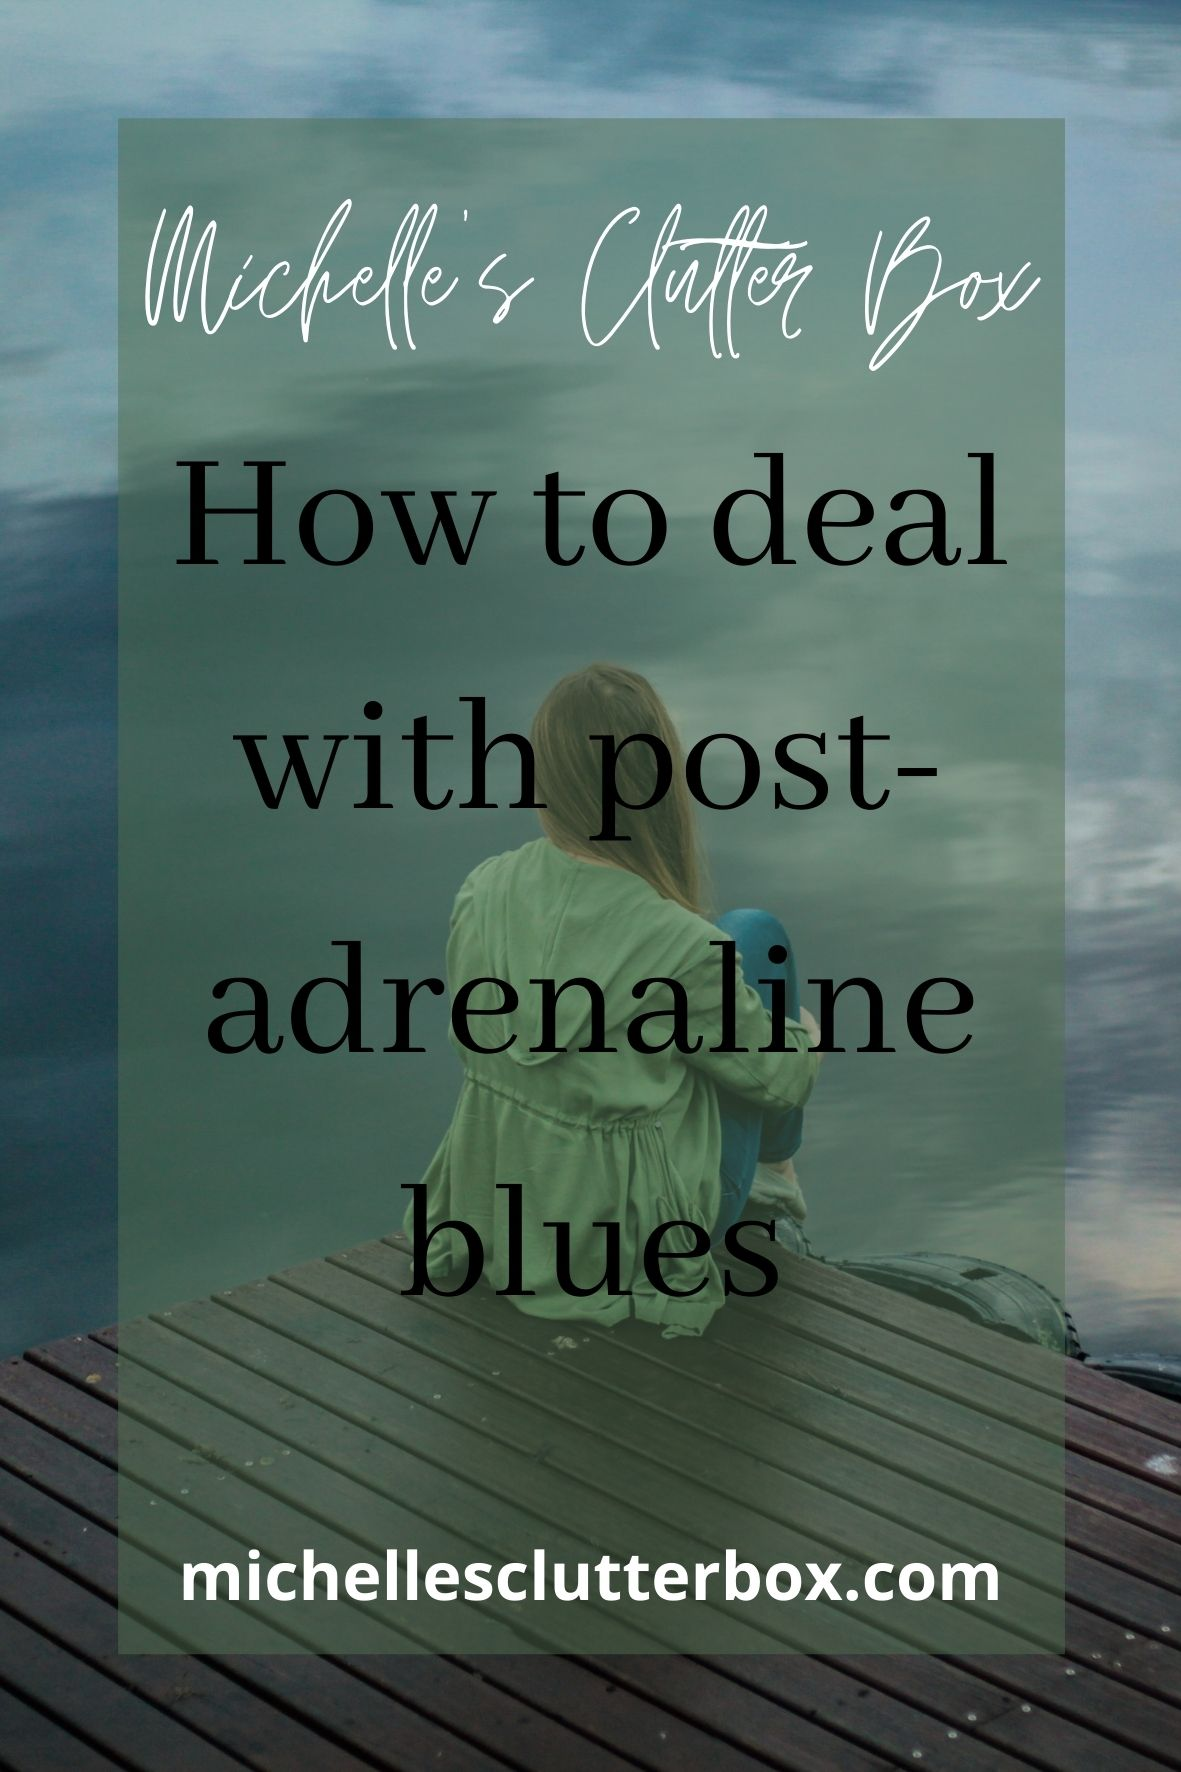 How to deal with post-adrenaline blues